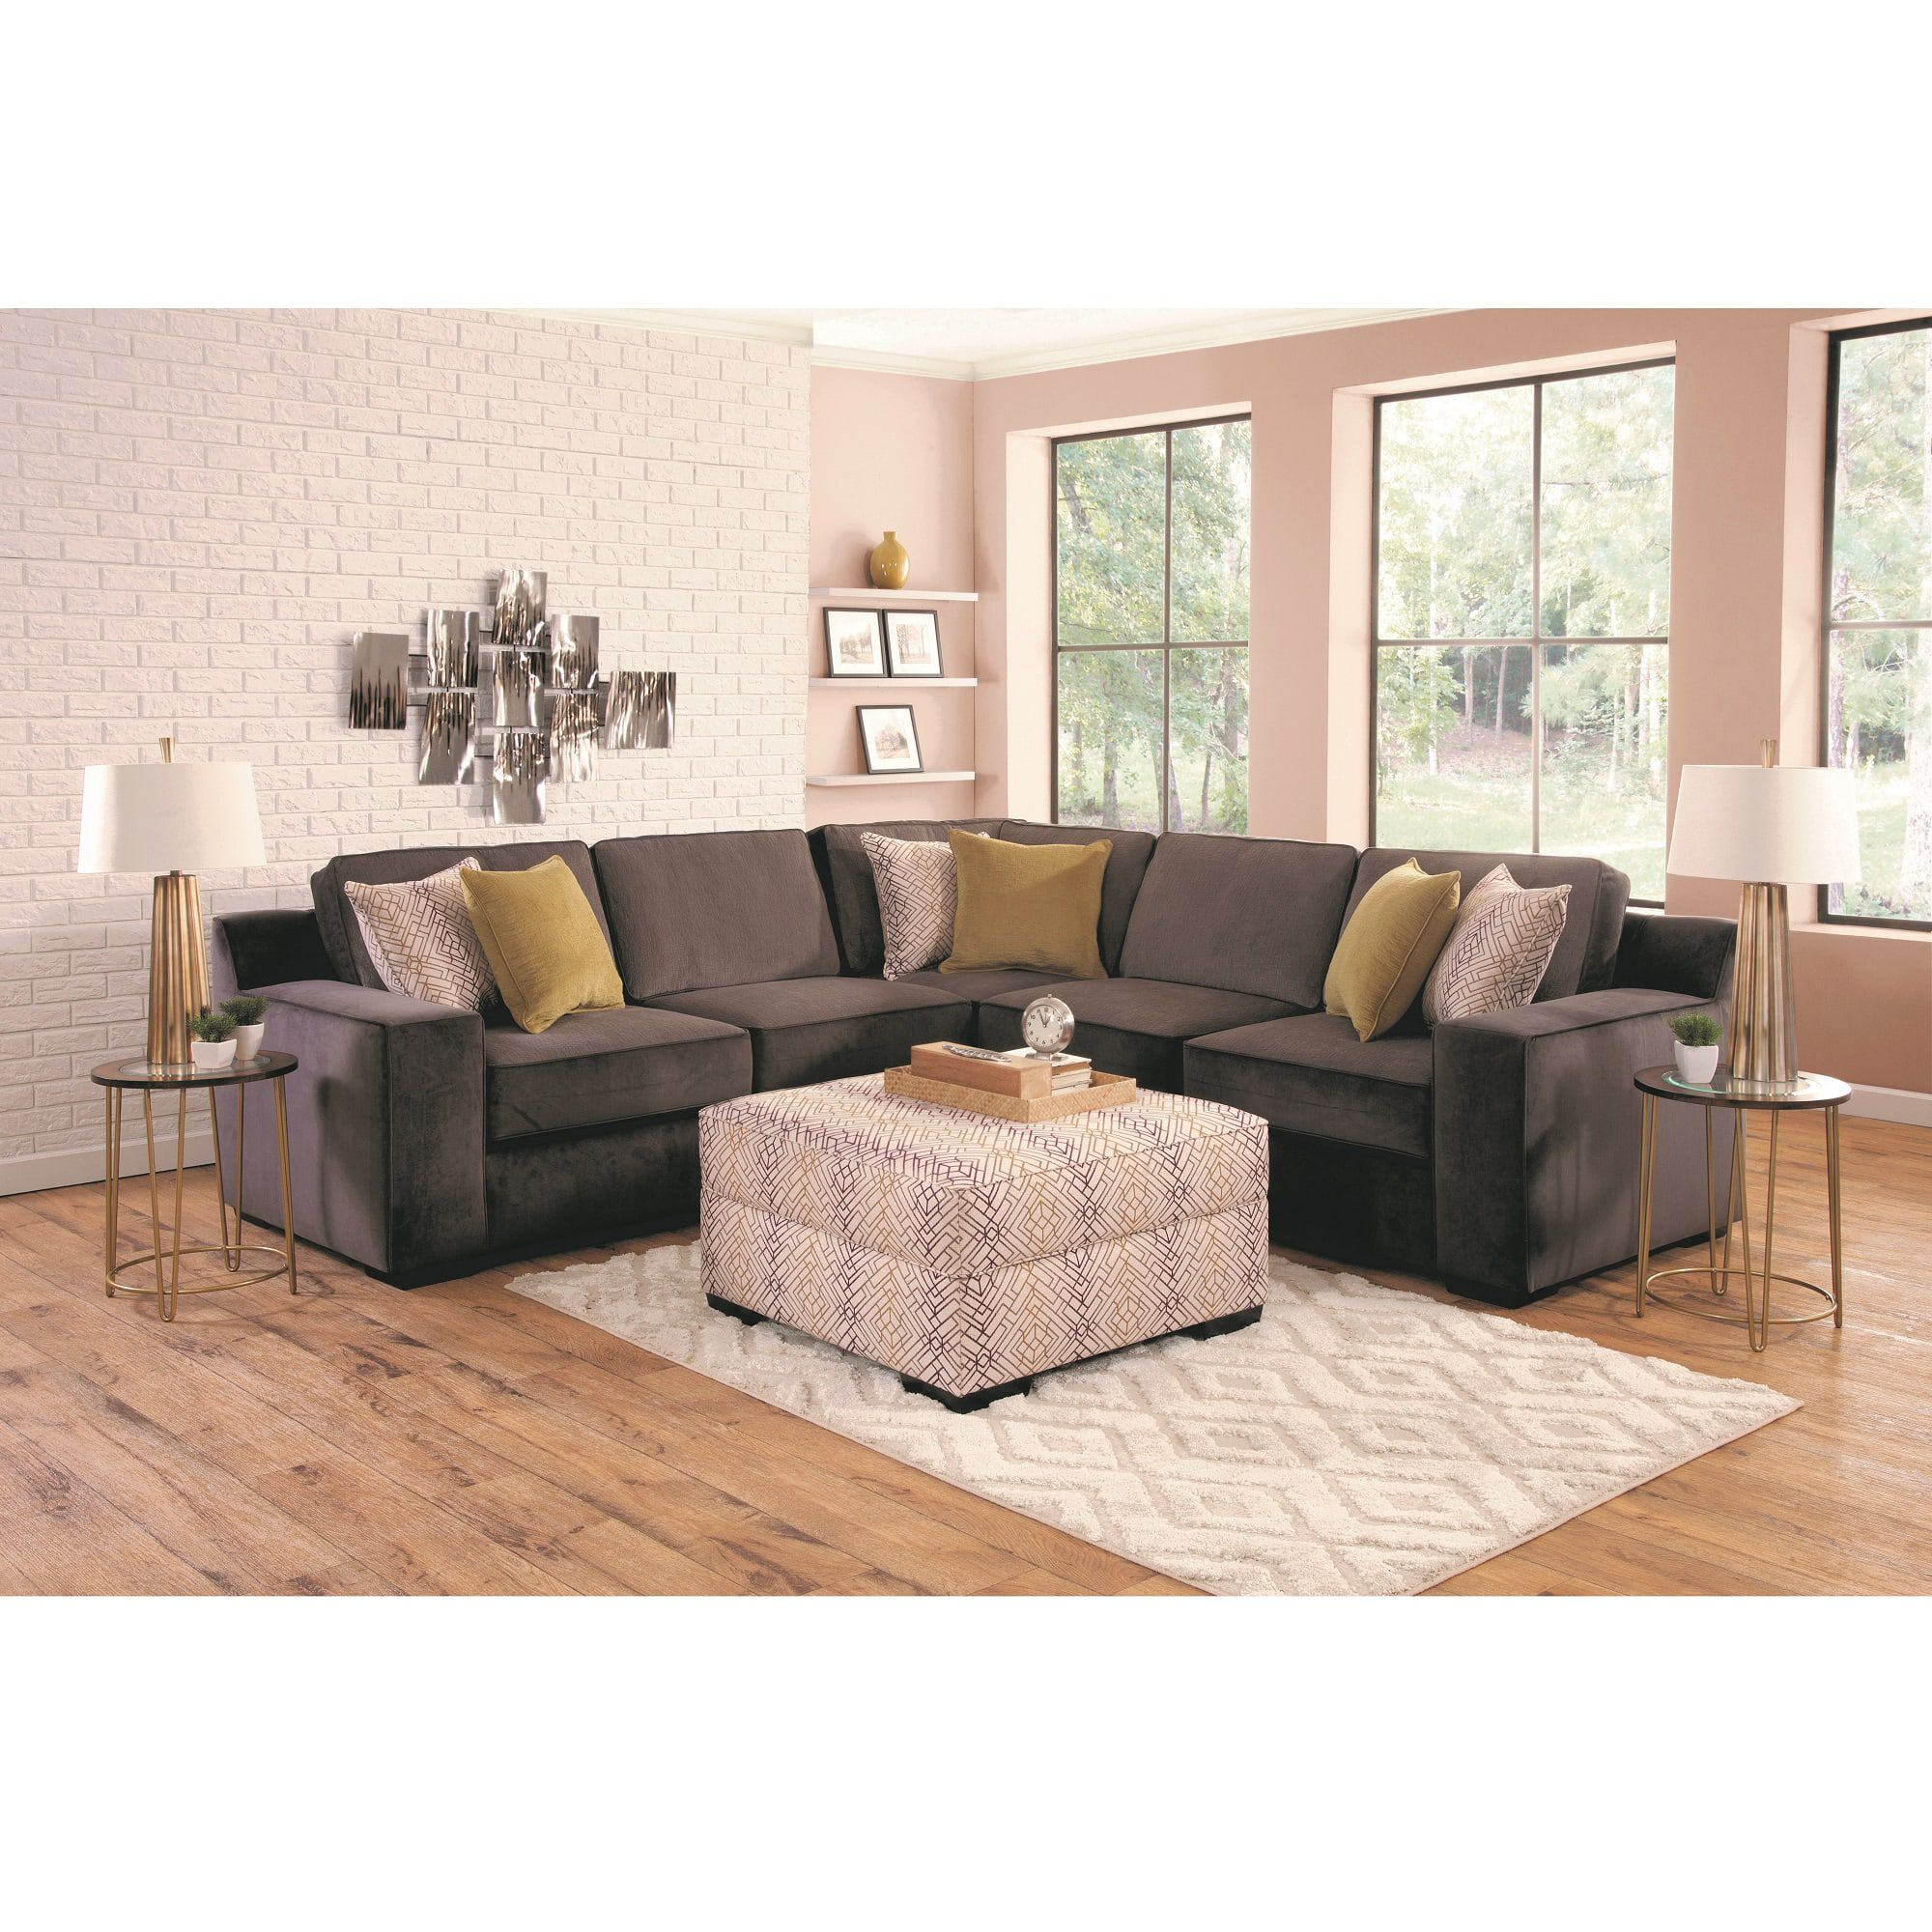 Rent to Own Living Room Furniture   Aaron s 4 Piece Sonja Living Room Collection